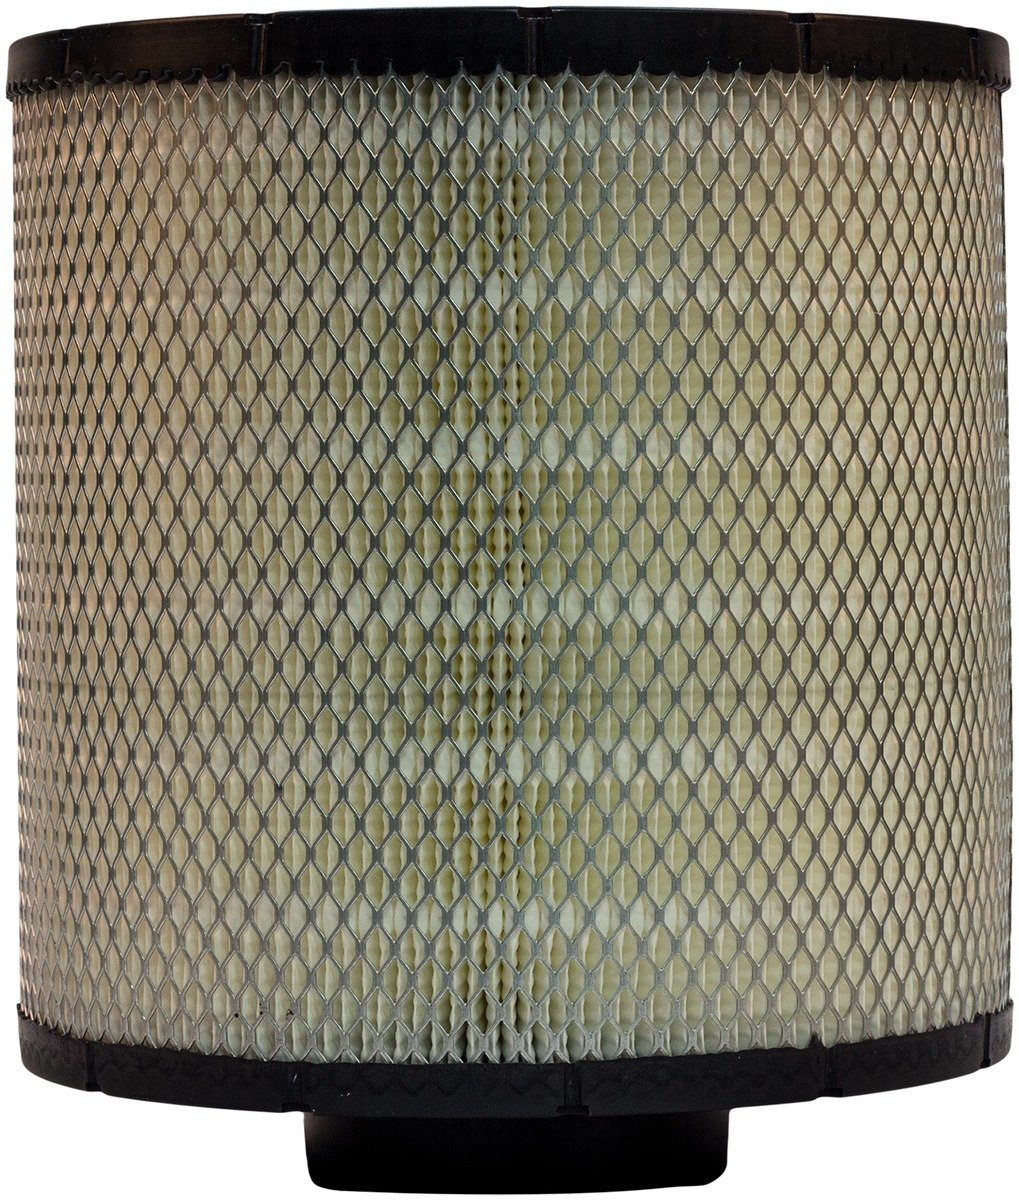 Luber-finer LAF2531 Heavy Duty Air Filter by Luber-finer